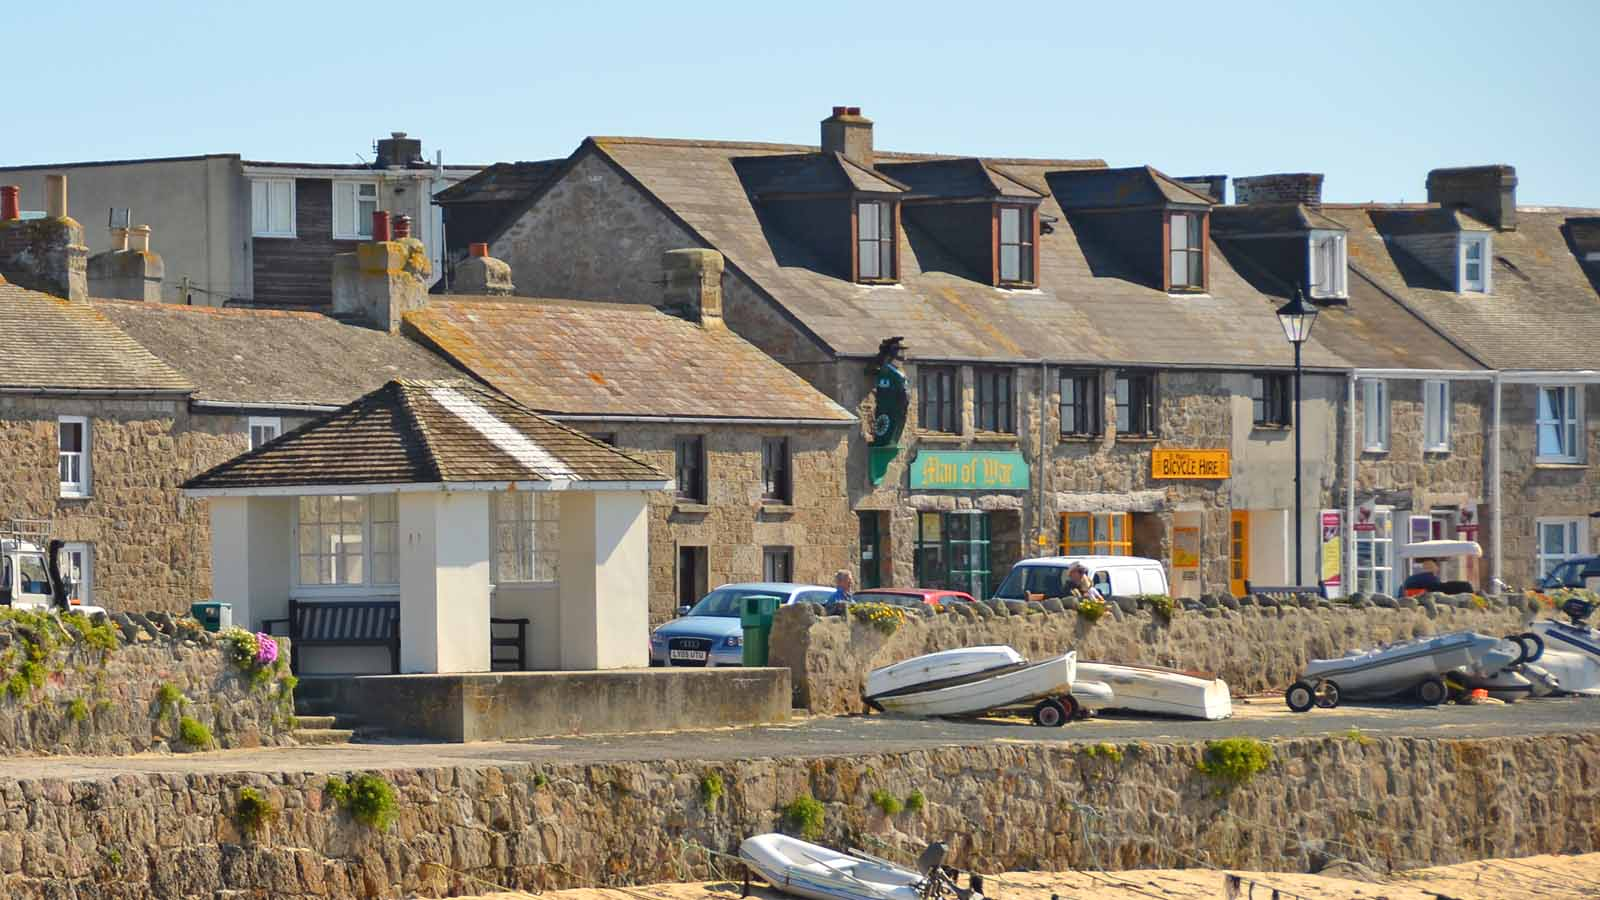 Council debates local homes plan again scilly today for Local house plans